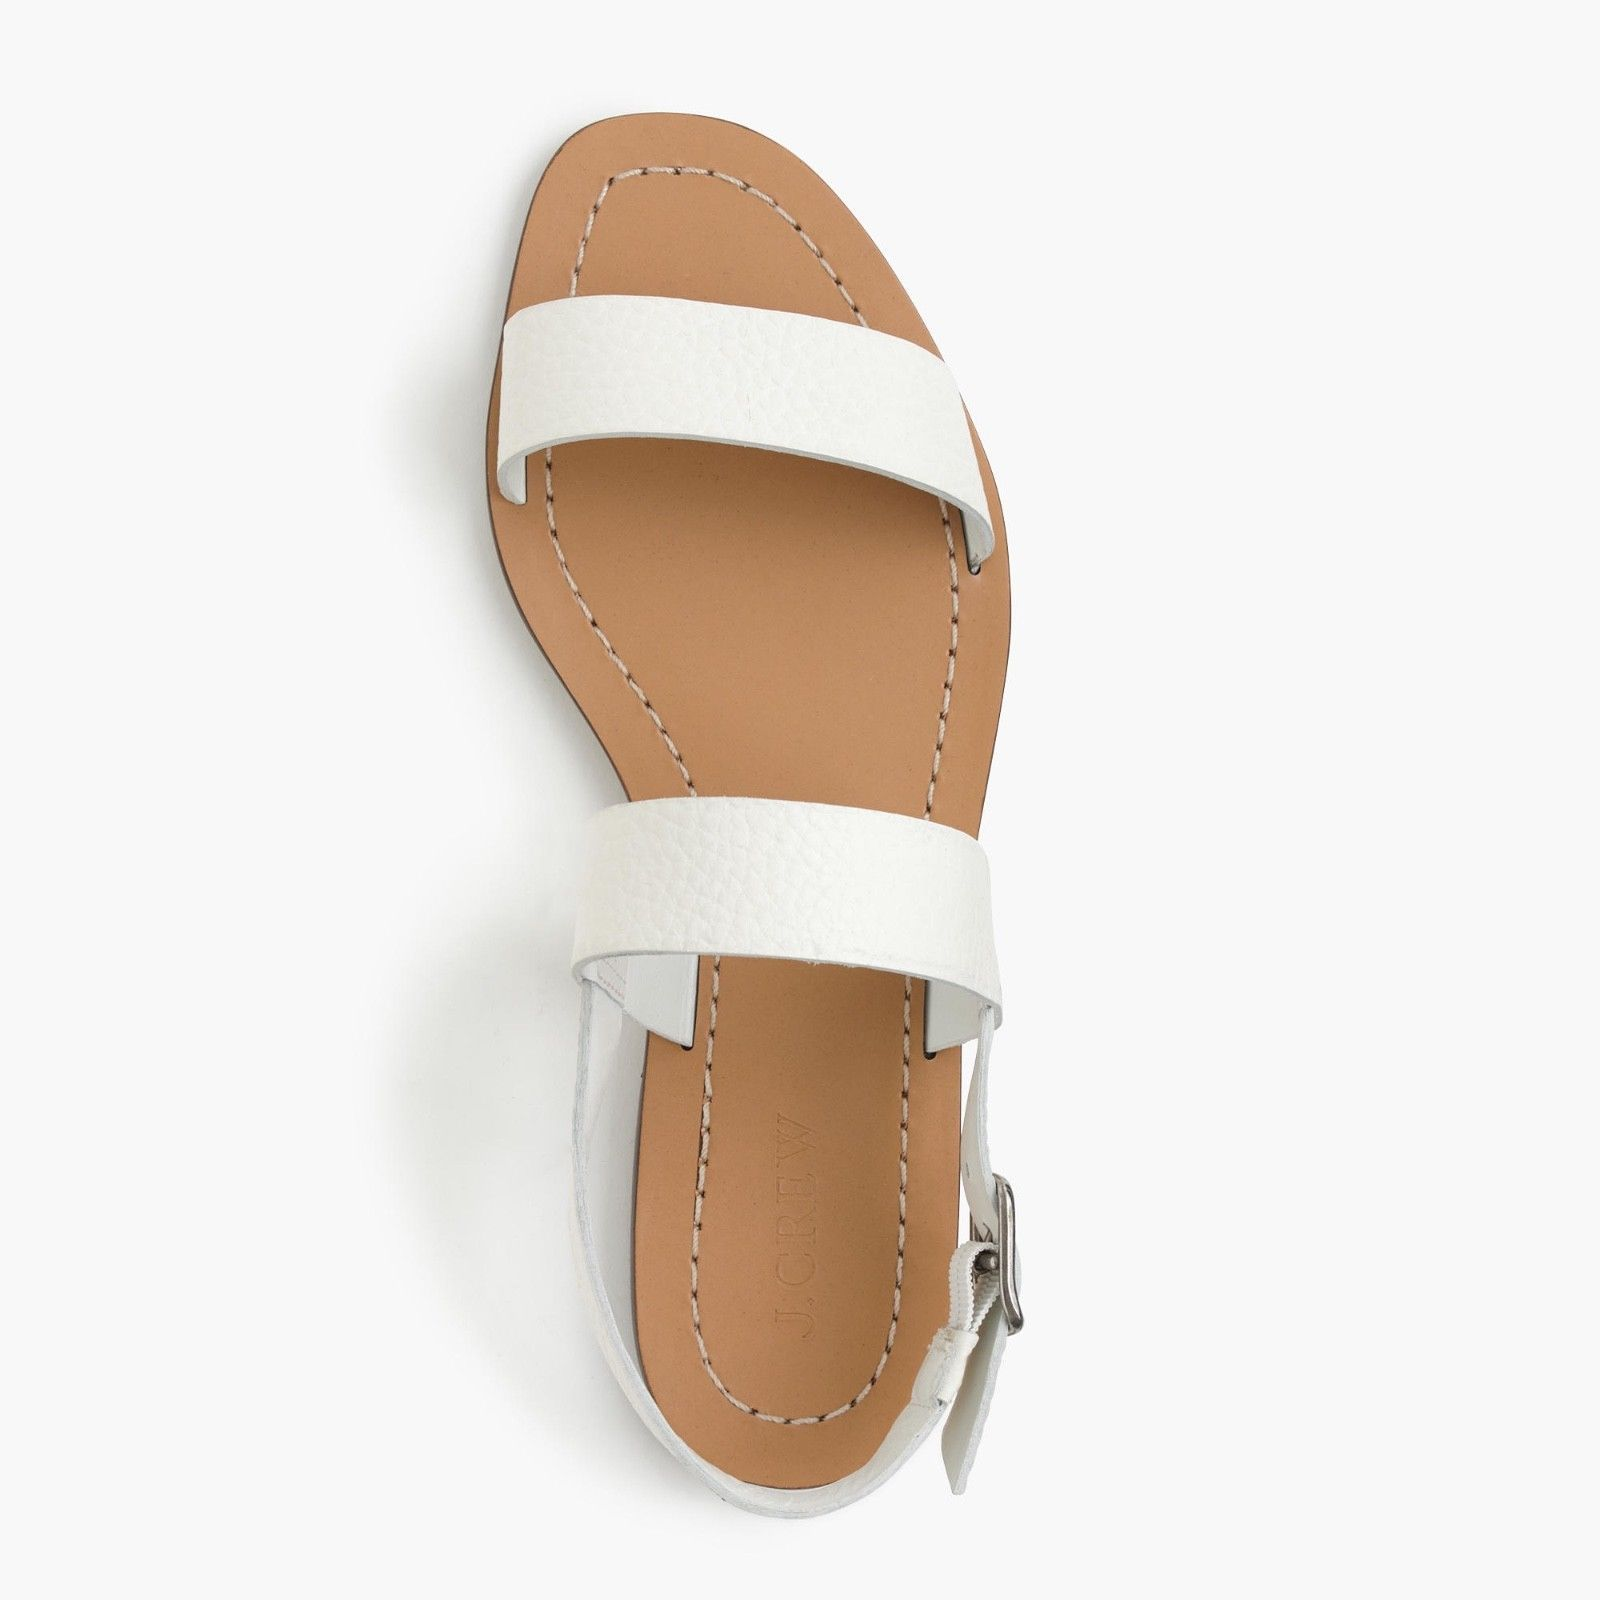 J. Crew Size 8 M Jules Tumbled Leather White Sandals Women's